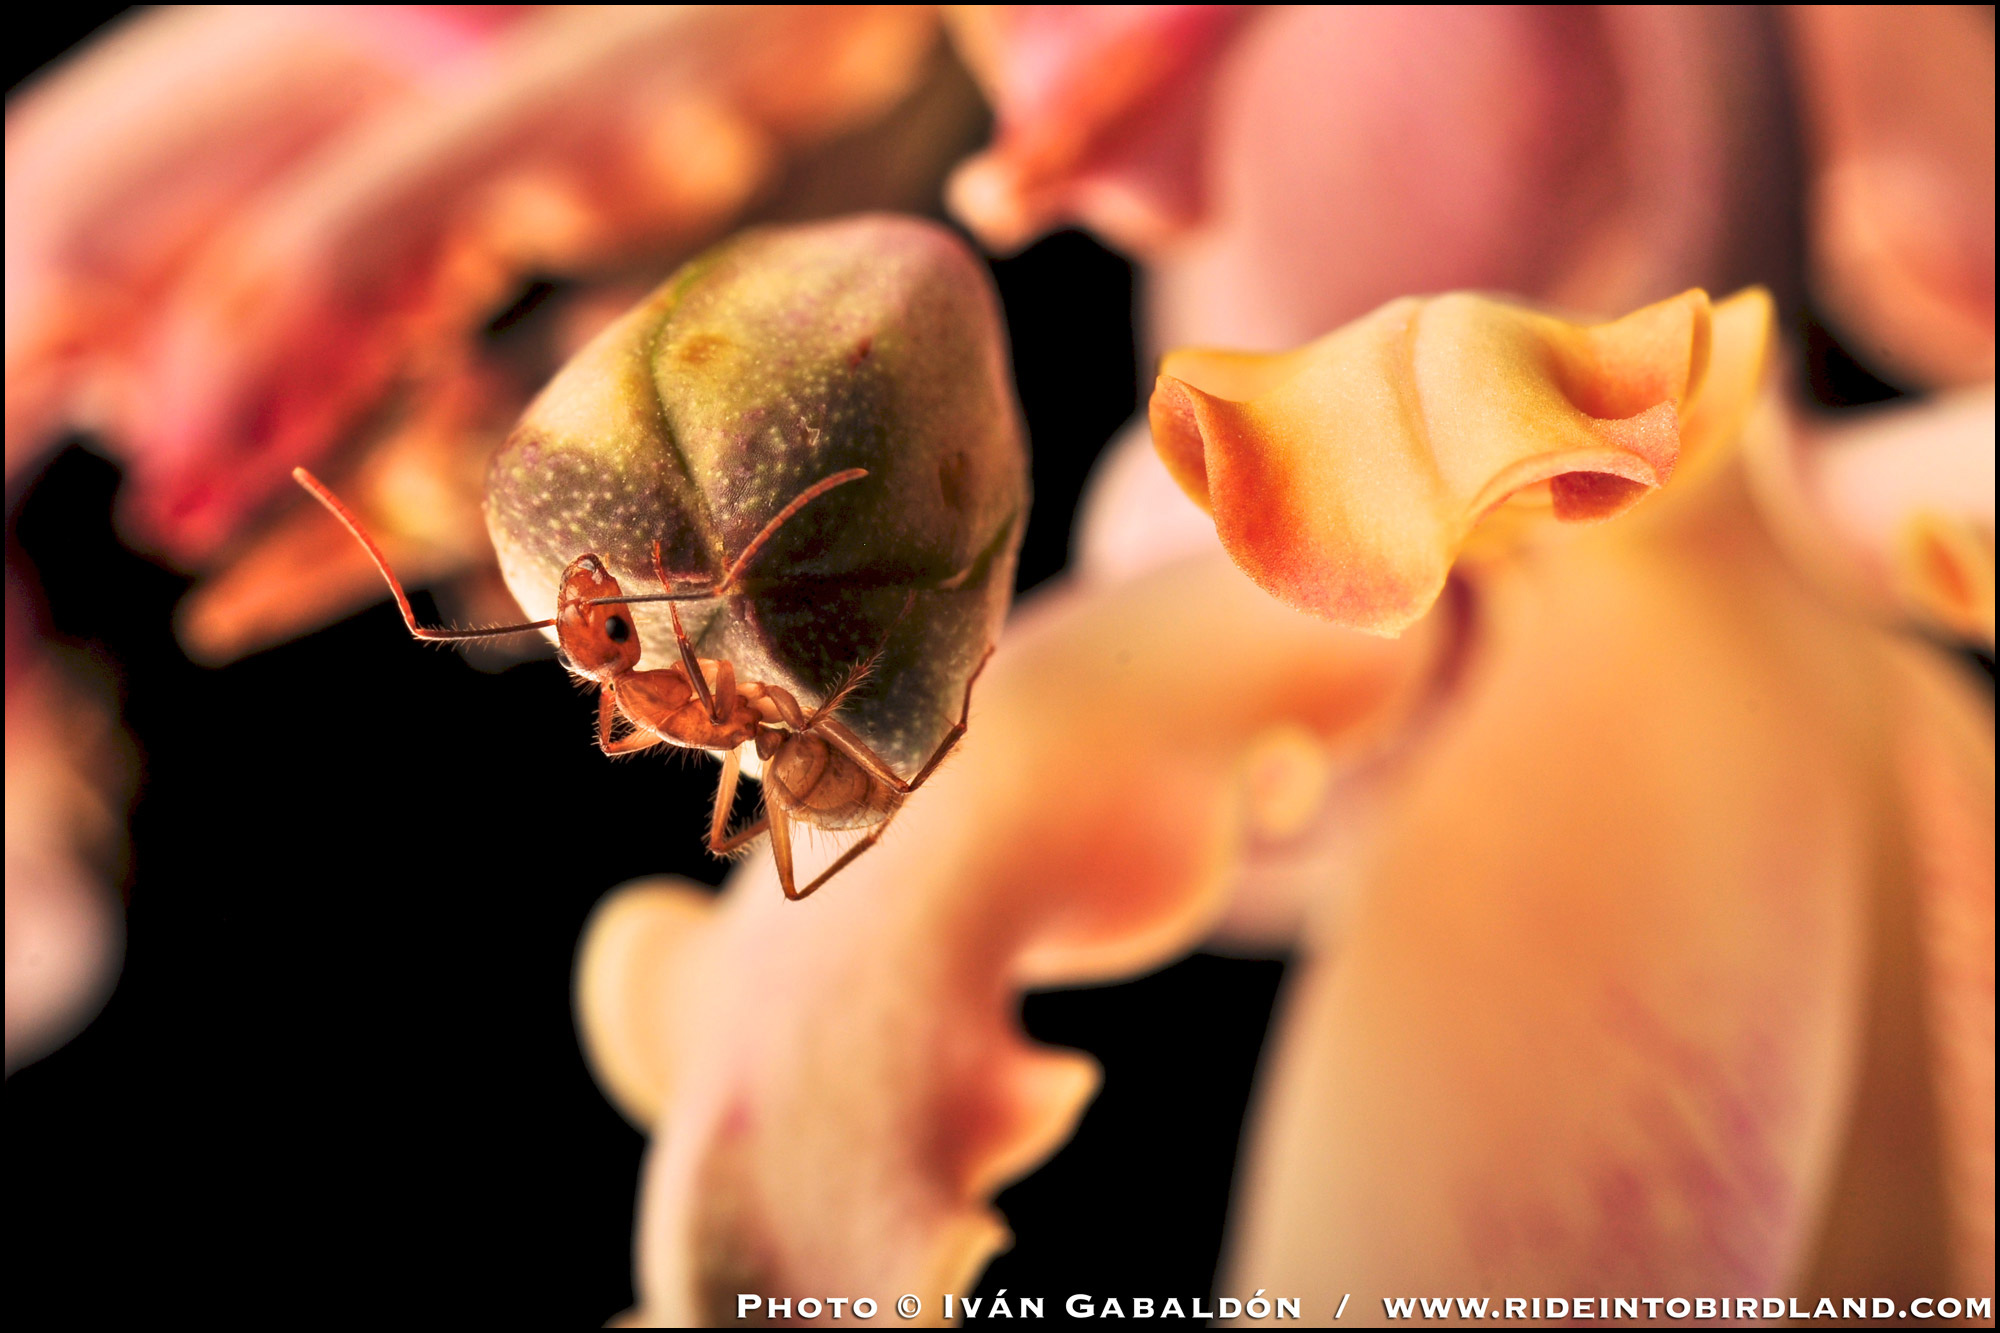 Reaching the confines of its orchid-world... (Photo © Iván Gabaldón).